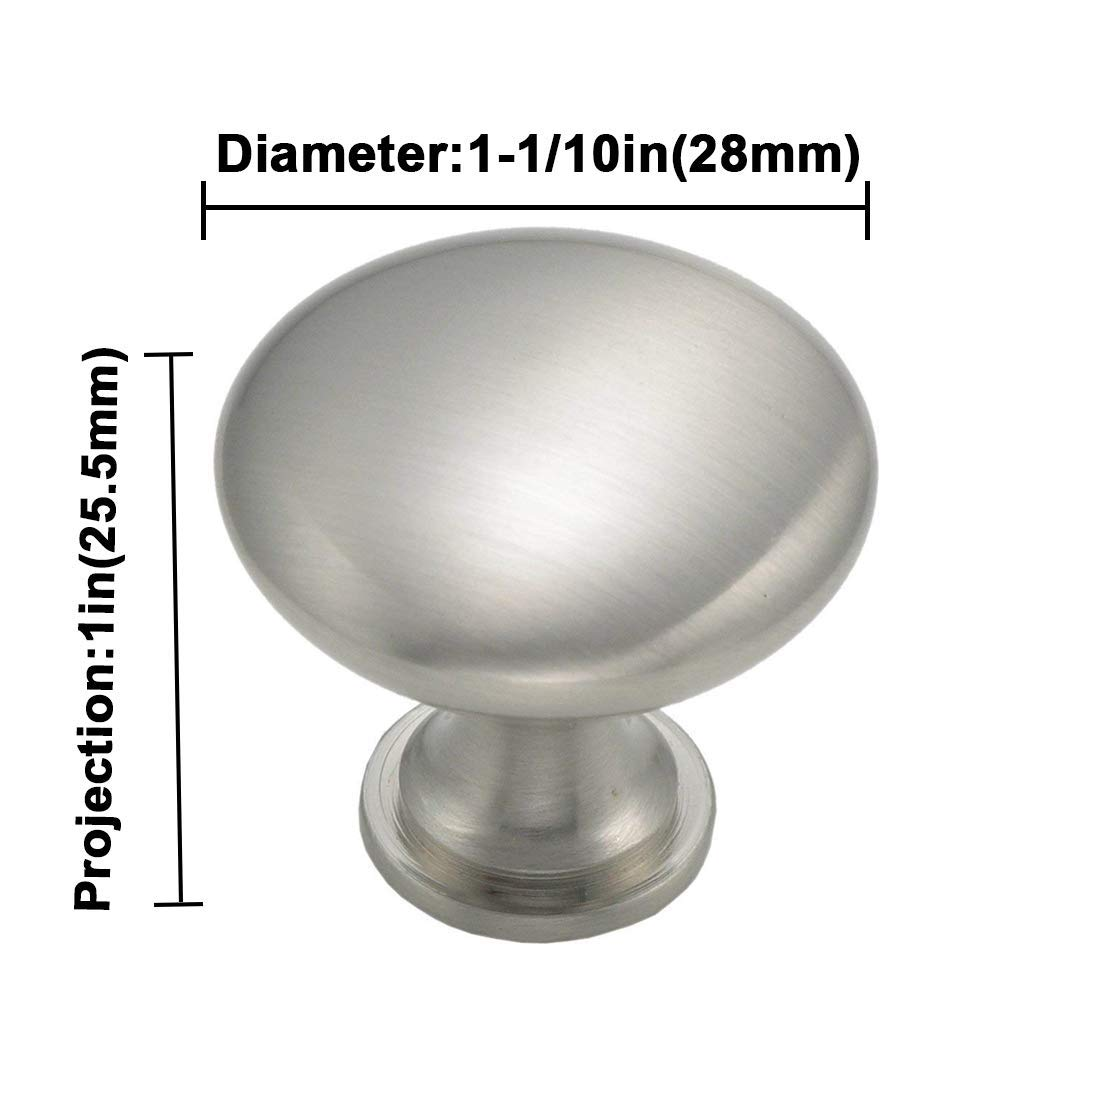 homdiy Round Cabinet Knobs Satin Nickel 20 Pack HD6050SNB Drawer Pulls and Knobs Metal Drawer Pulls Kitchen Cabinet Hardware Knobs